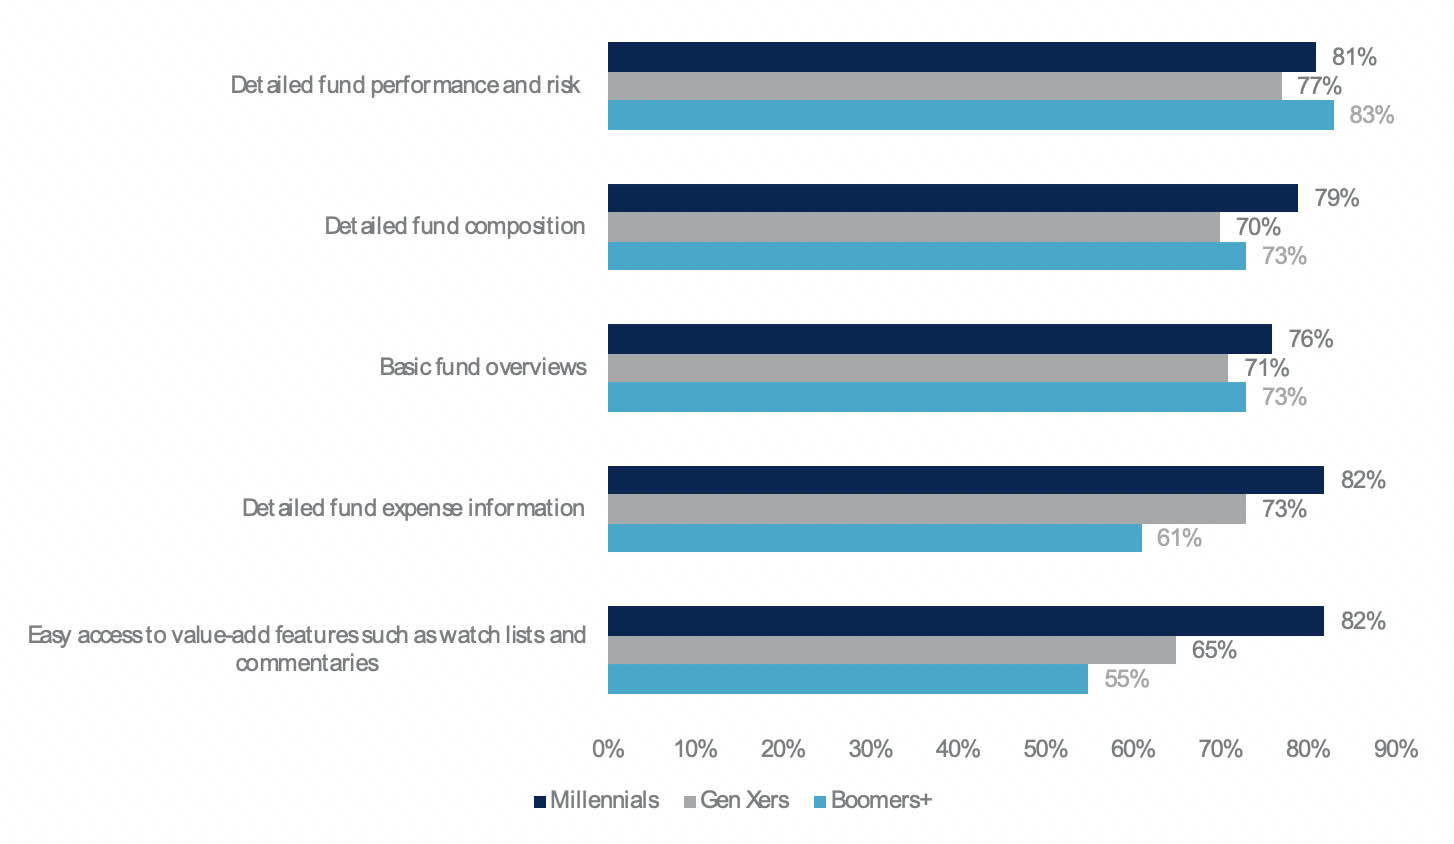 Resource-rich asset management digital experience means detailed fund information